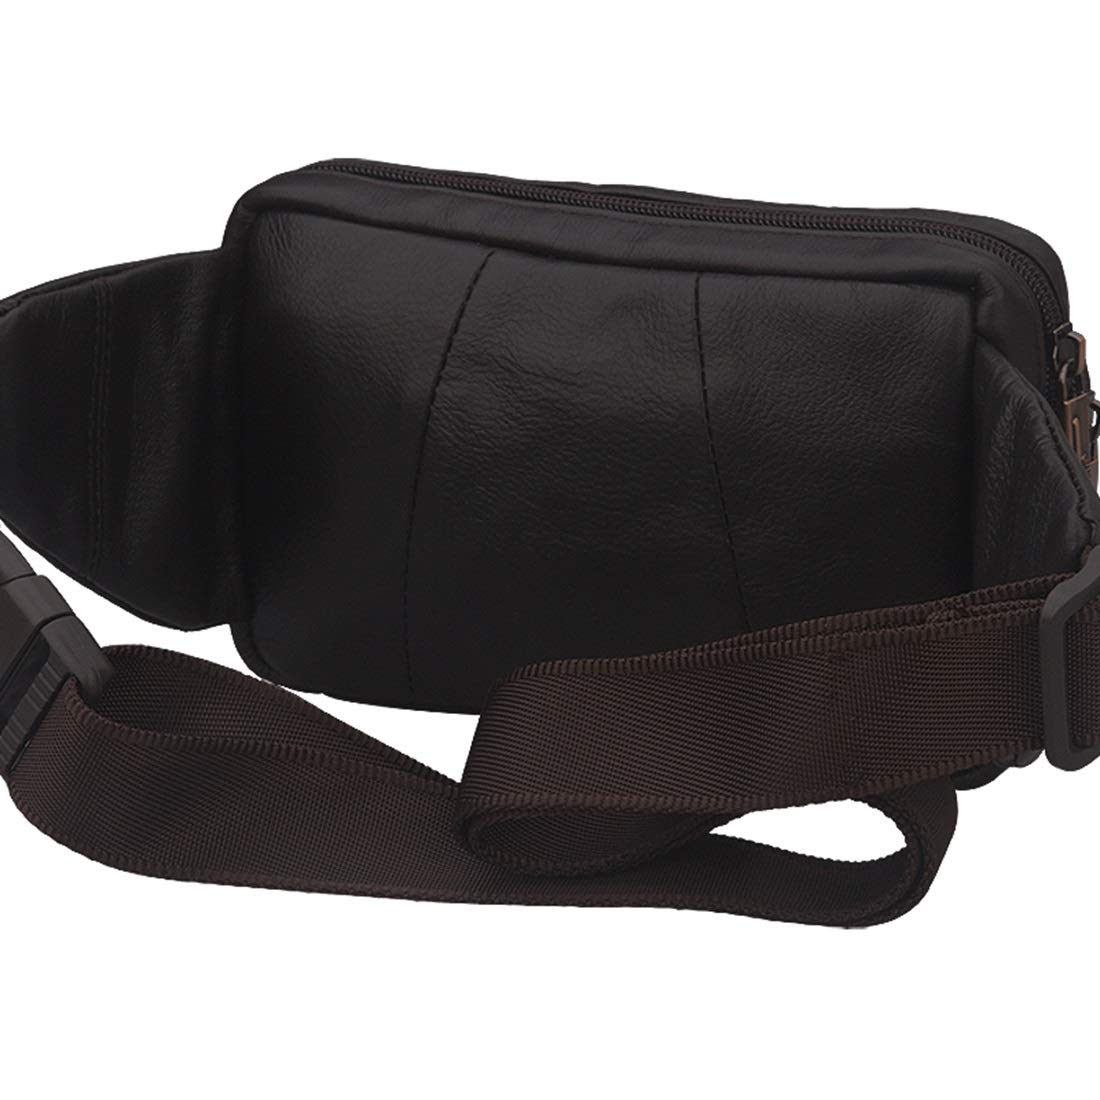 RABILTY Running Belt Waist Fanny Pack Pouch for iPhone 7 8 Plus X Brown Cowhide Travel Neck Pouch Color : Black